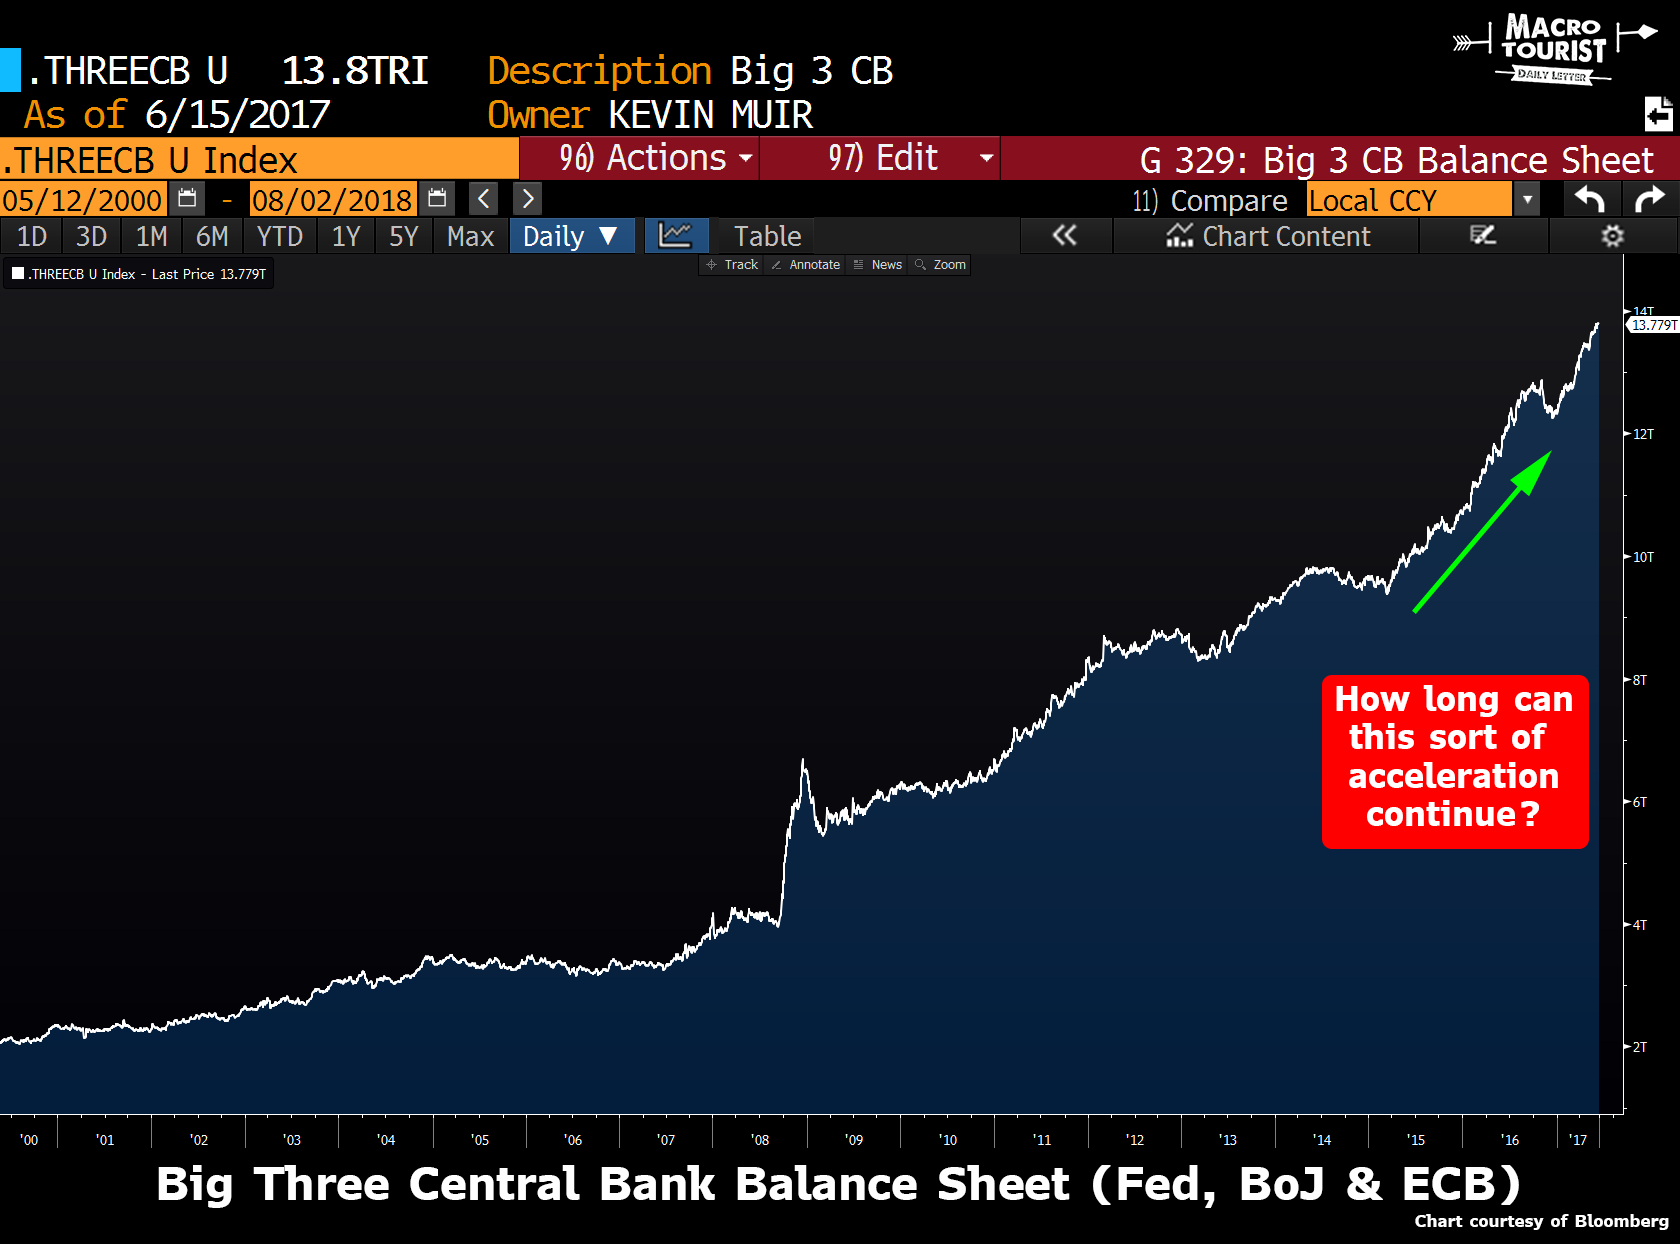 Big Three Central Bank Balance Sheet